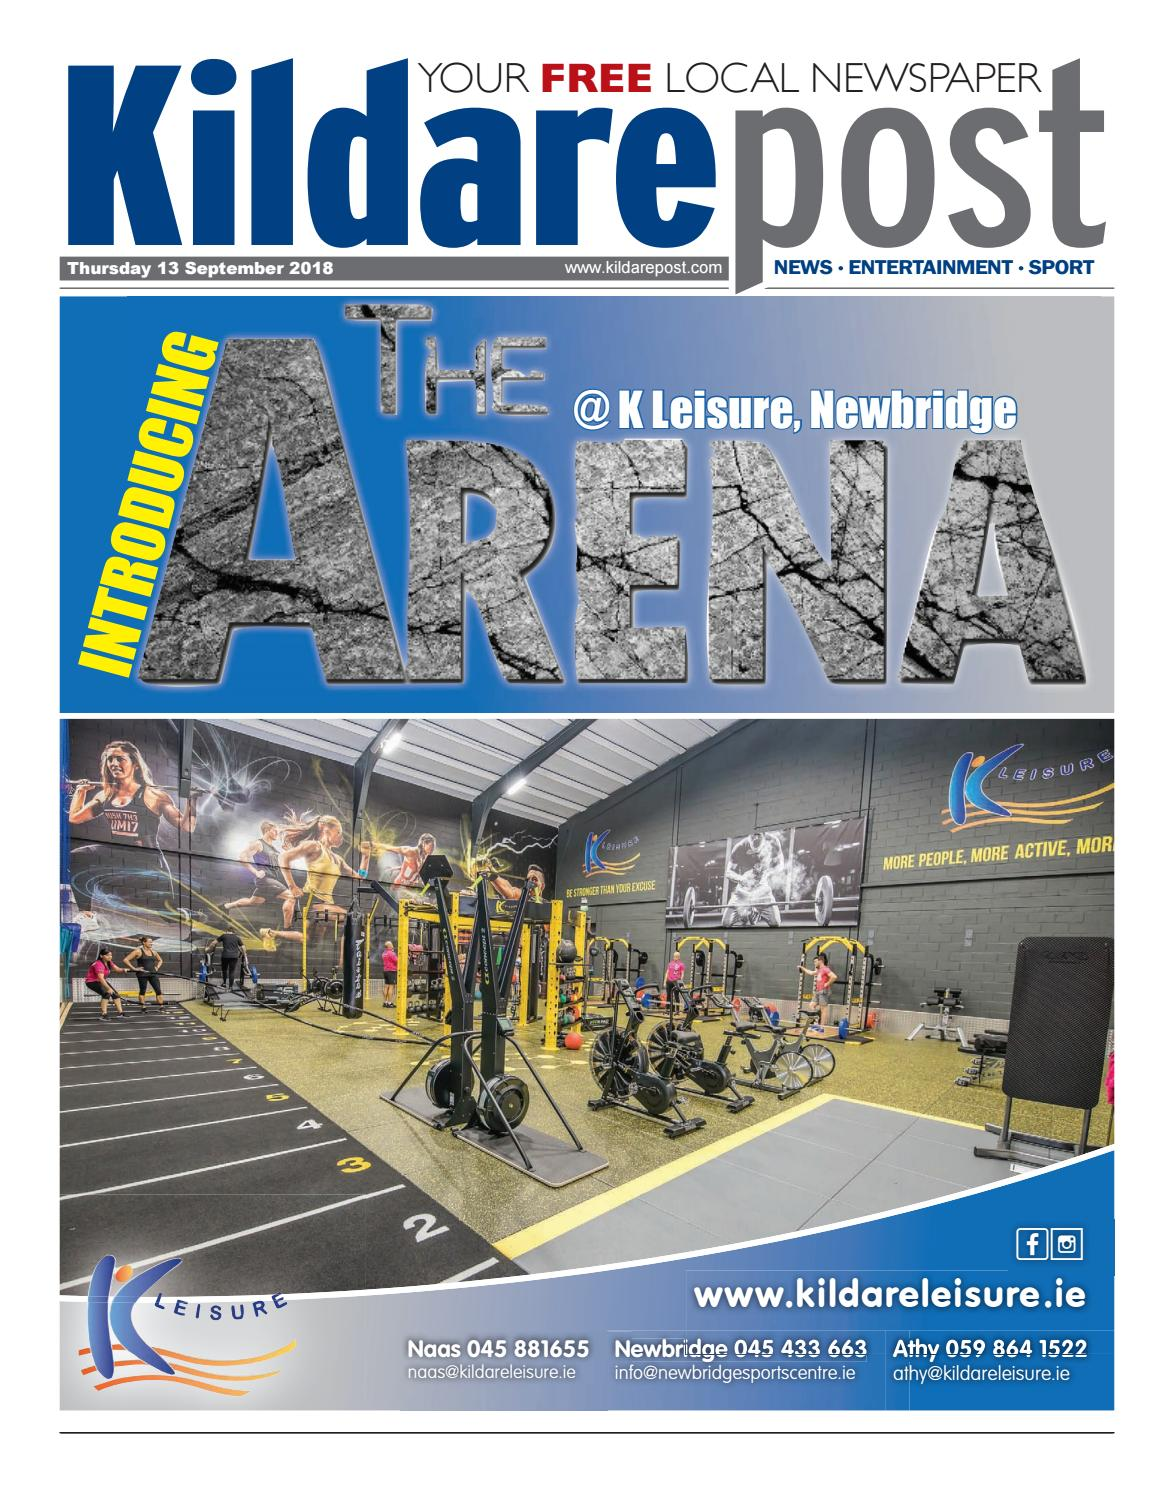 Thursday 13th September 2018 by River Media Newspapers - issuu 82759d07698c6